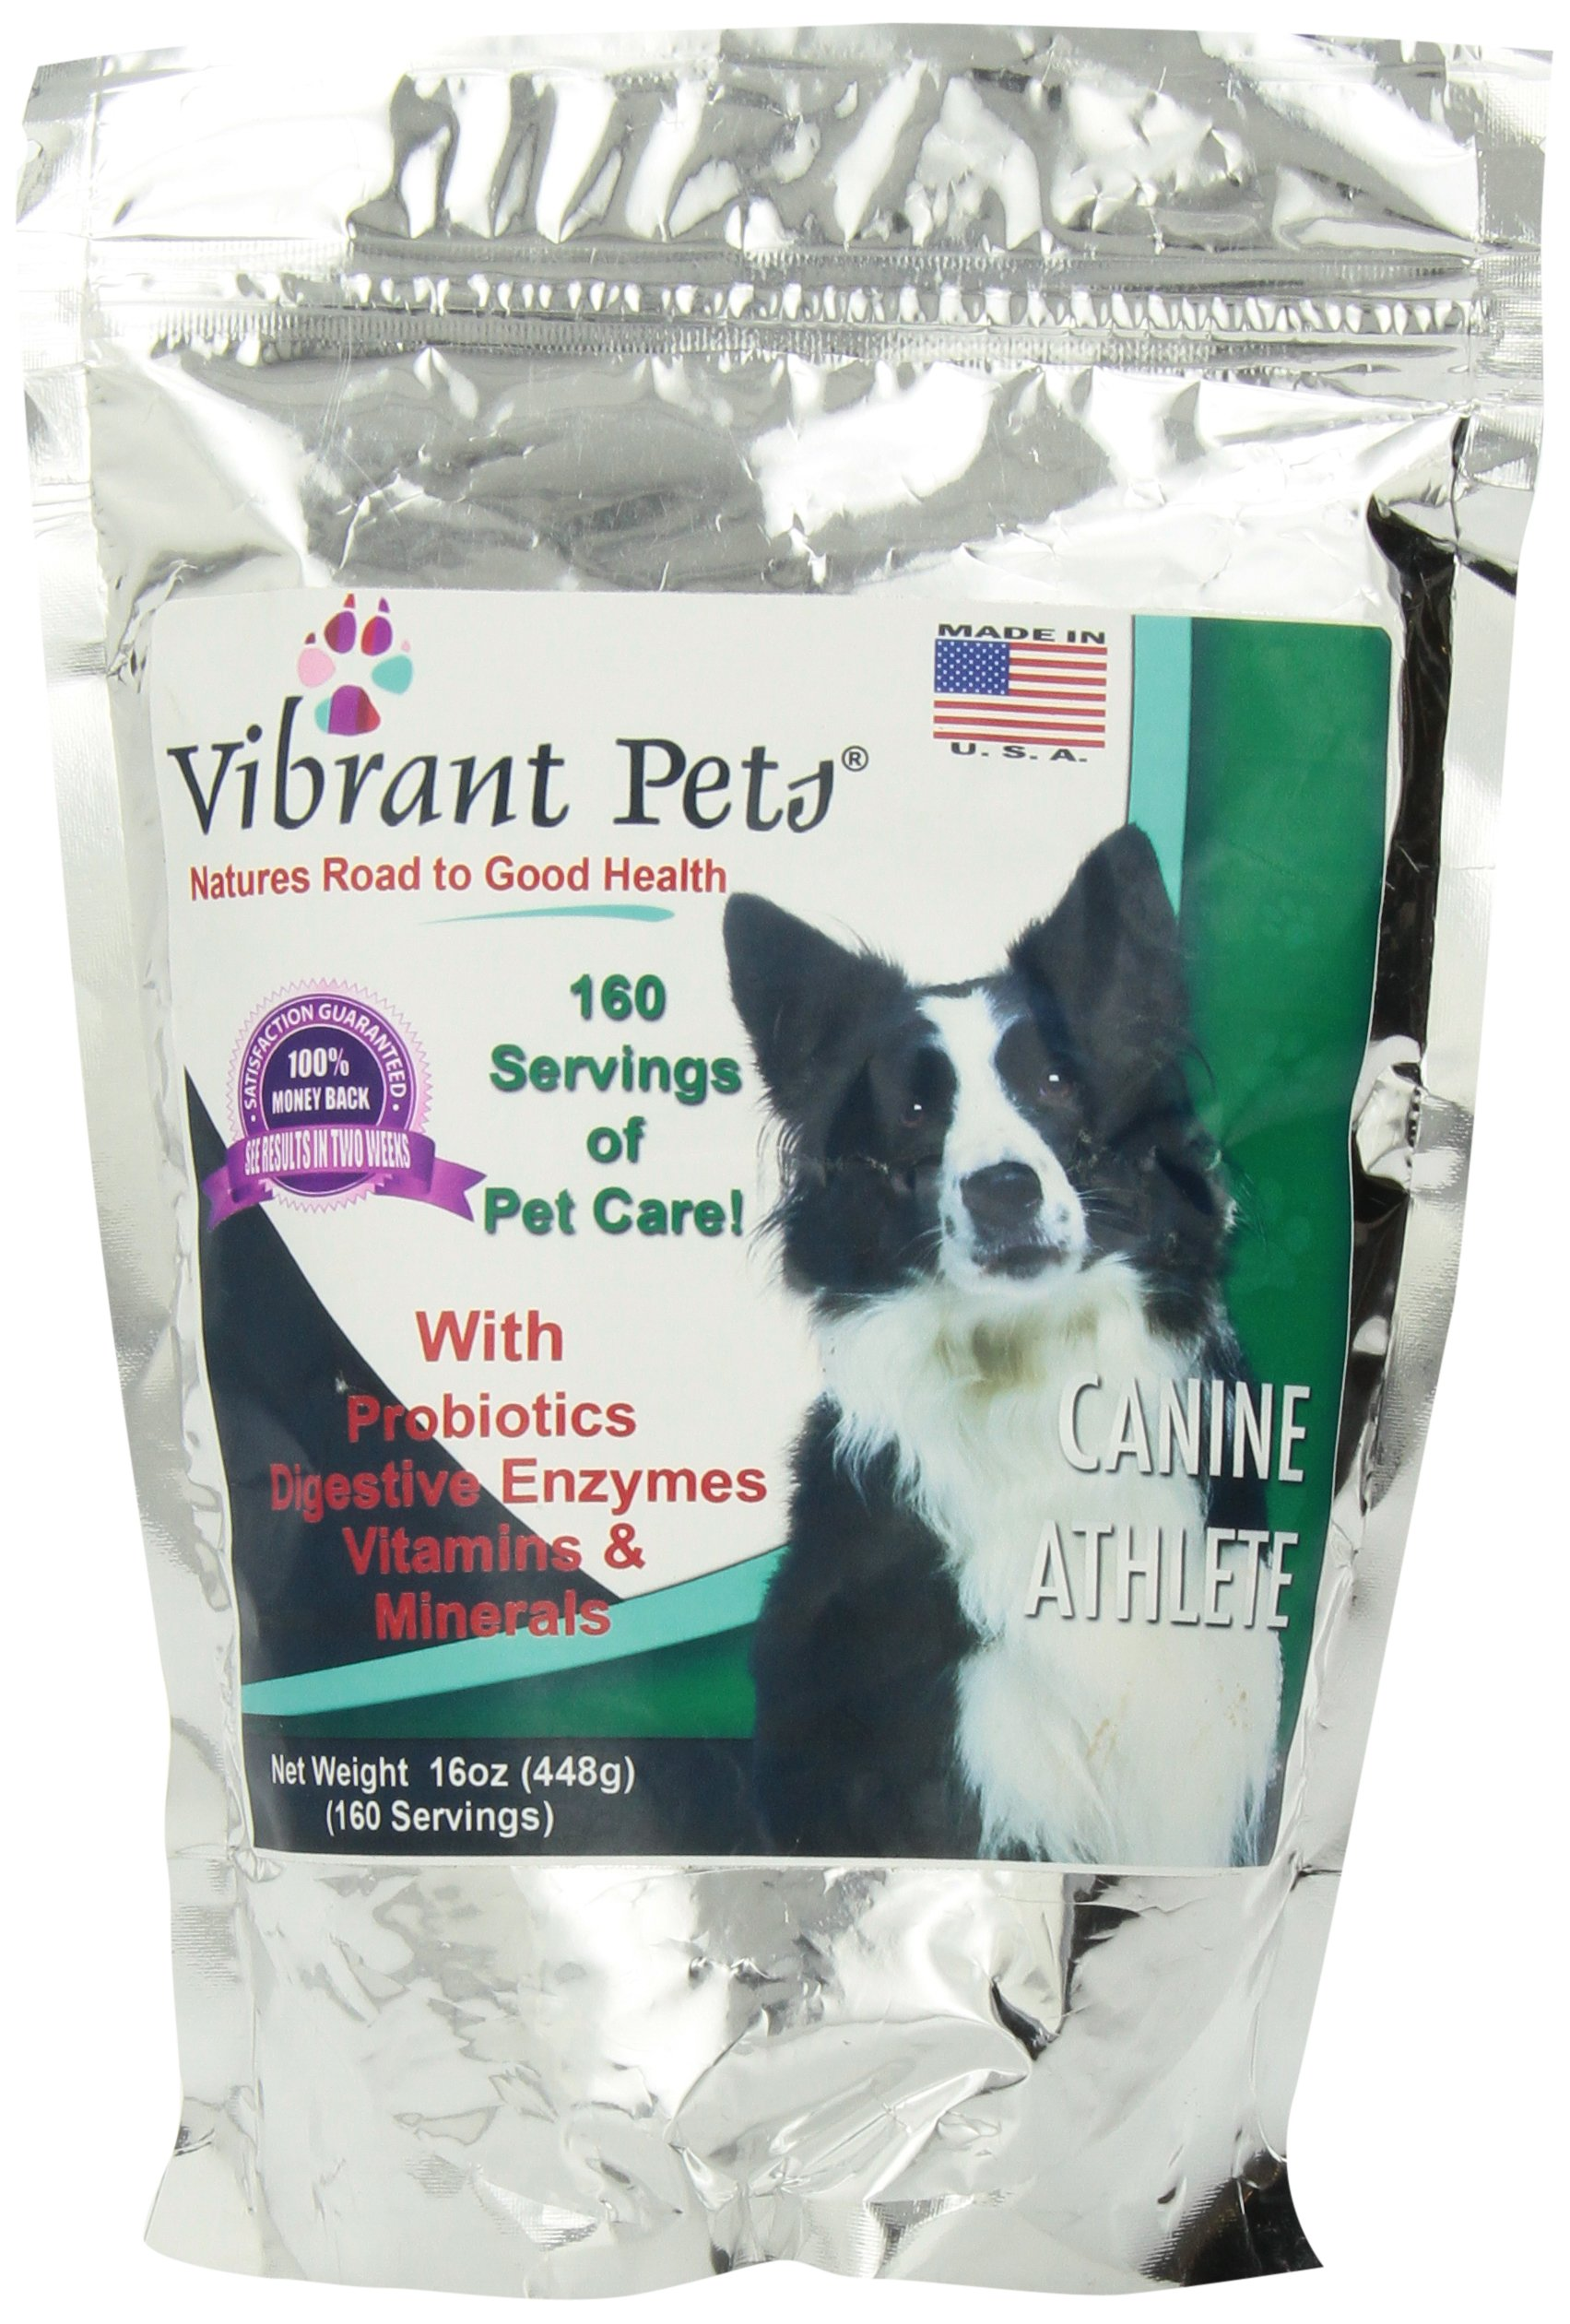 Vibrant Pets Canine Athlete | Complete Immune Booster, Dog Energy Supplement and Dog Skin Supplement for Health and Joint Support | All in One Nutrition for Active and Aged Dogs 16oz